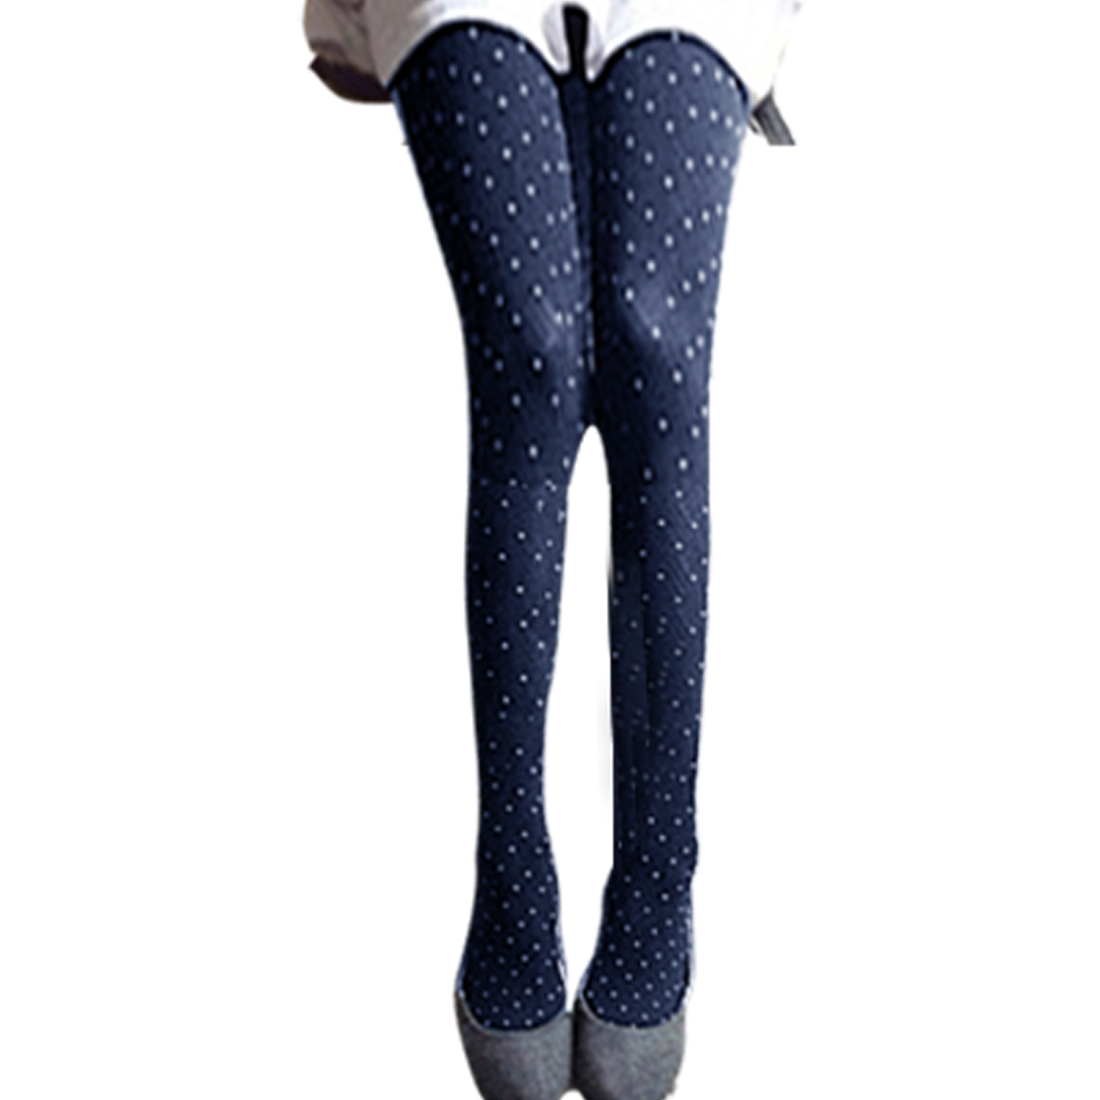 Woman Dark Blue Dotted Embroider Stockings Tights Footed Pantyhose XS